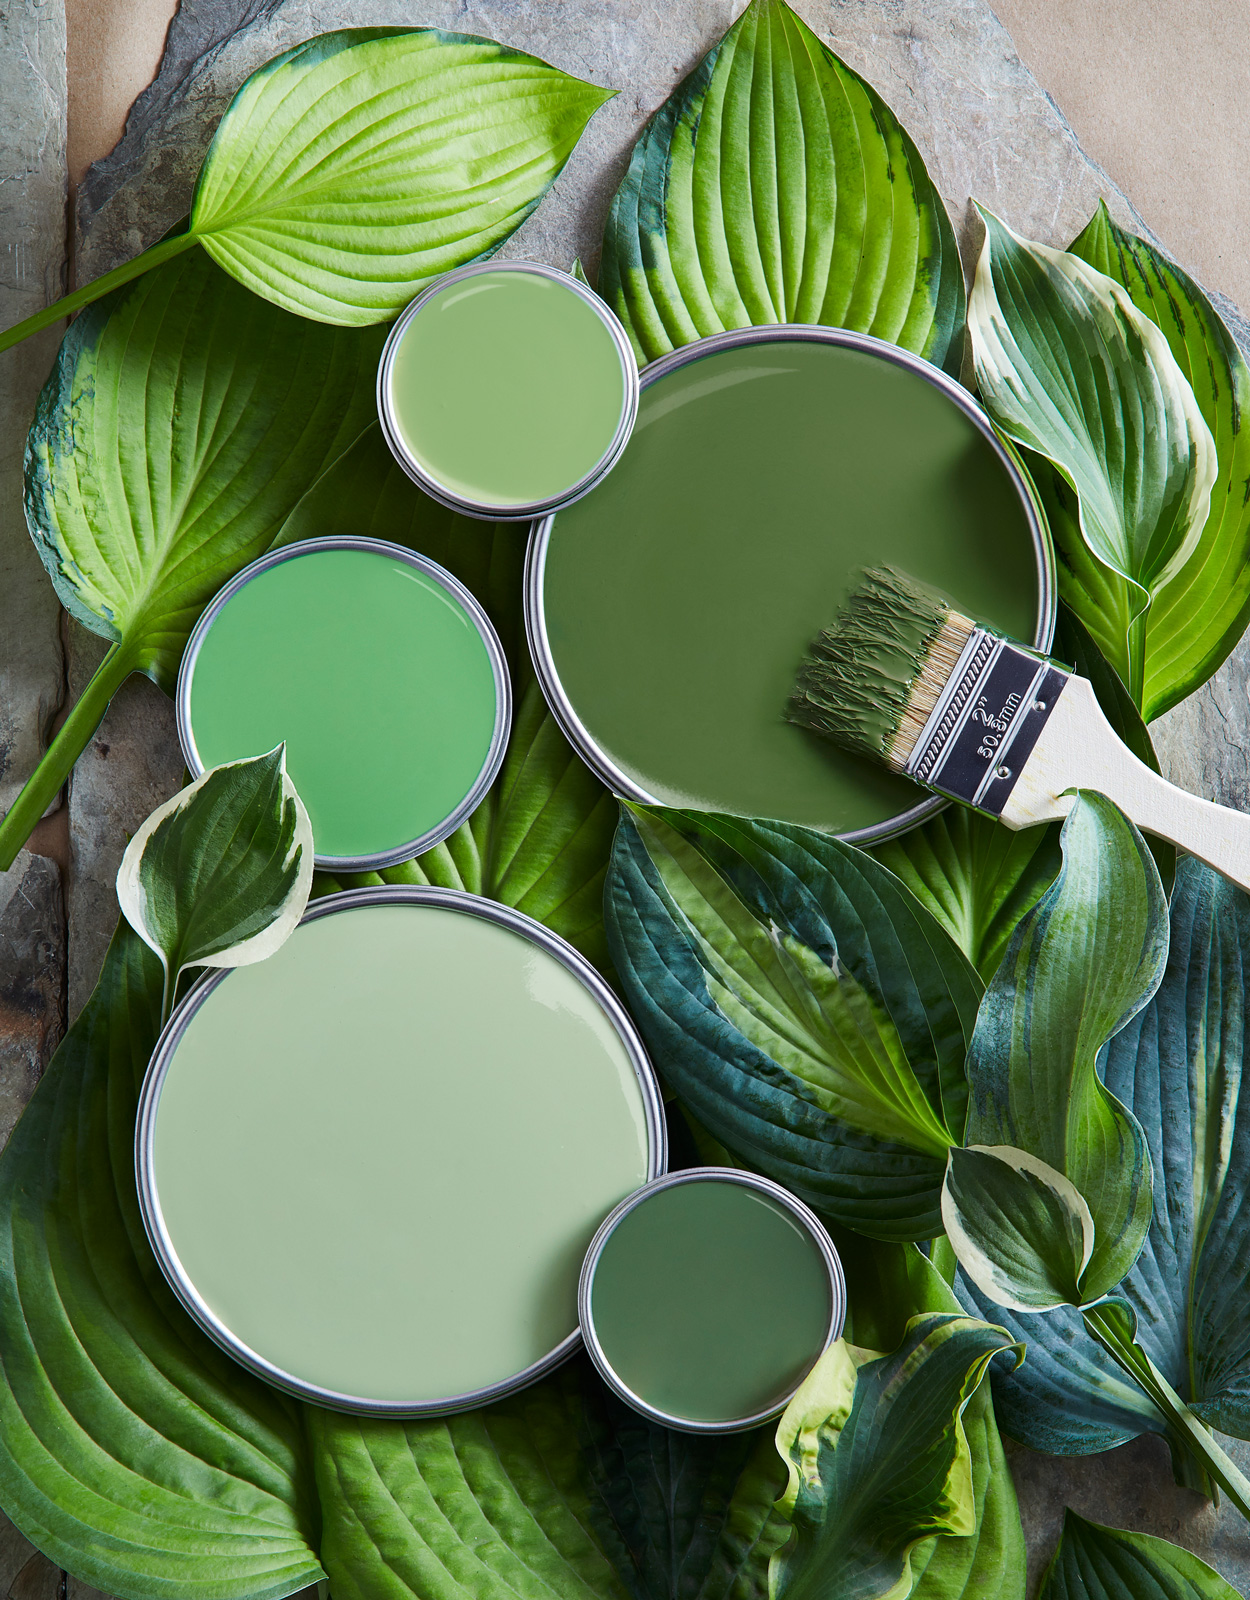 five shades of green paint surrounded by leaves